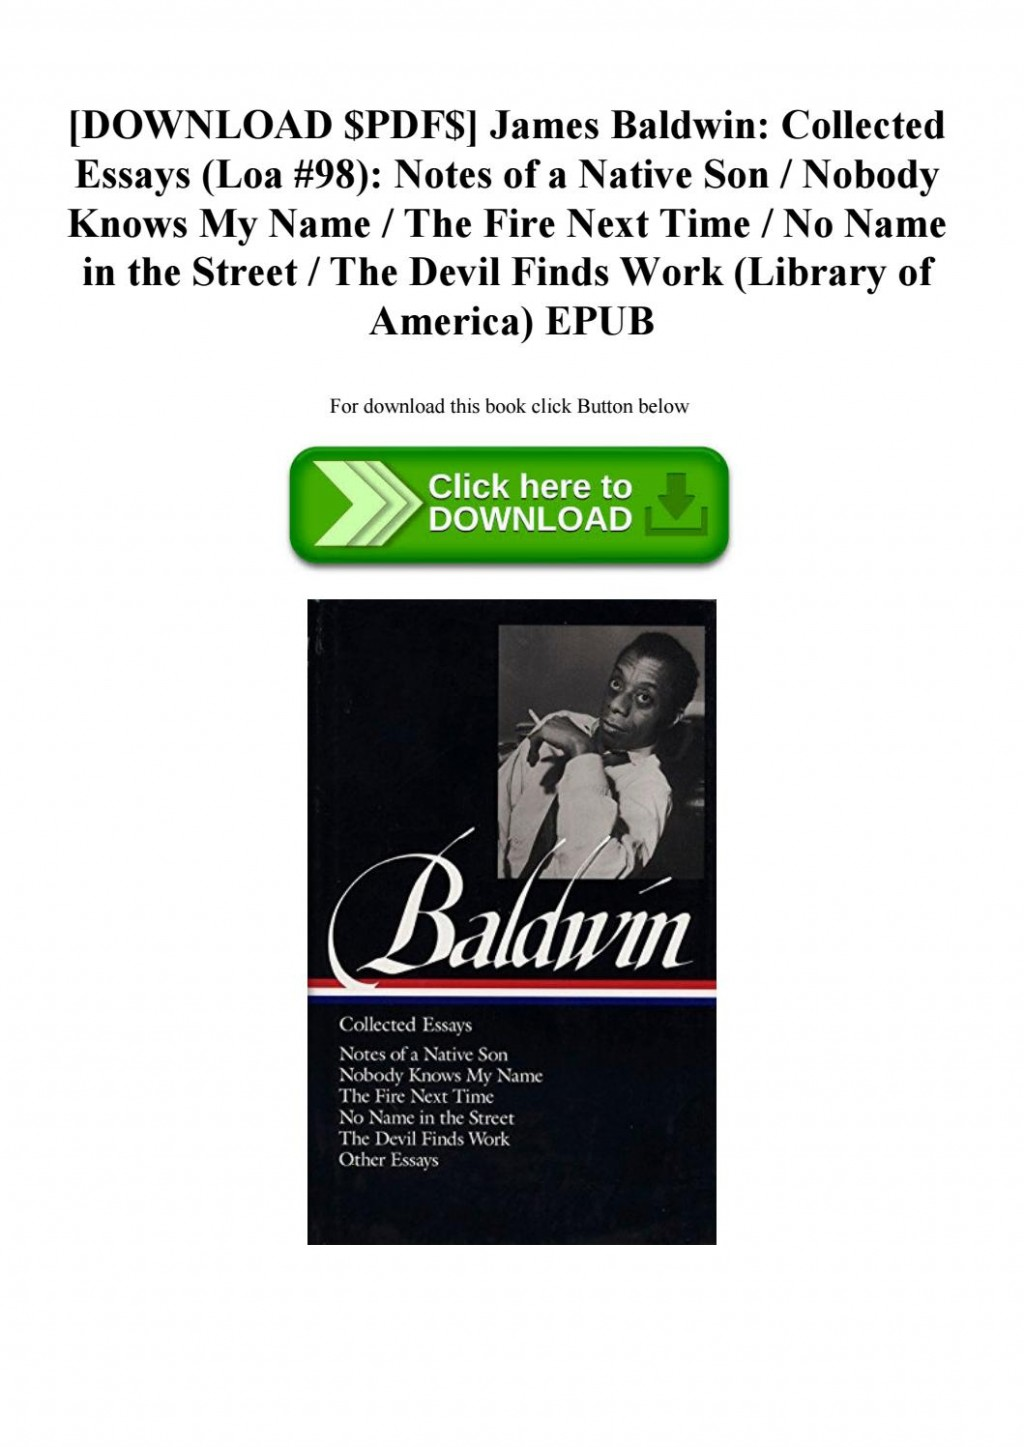 006 Page 1 James Baldwin Collected Essays Essay Wondrous Table Of Contents Ebook Google Books Large